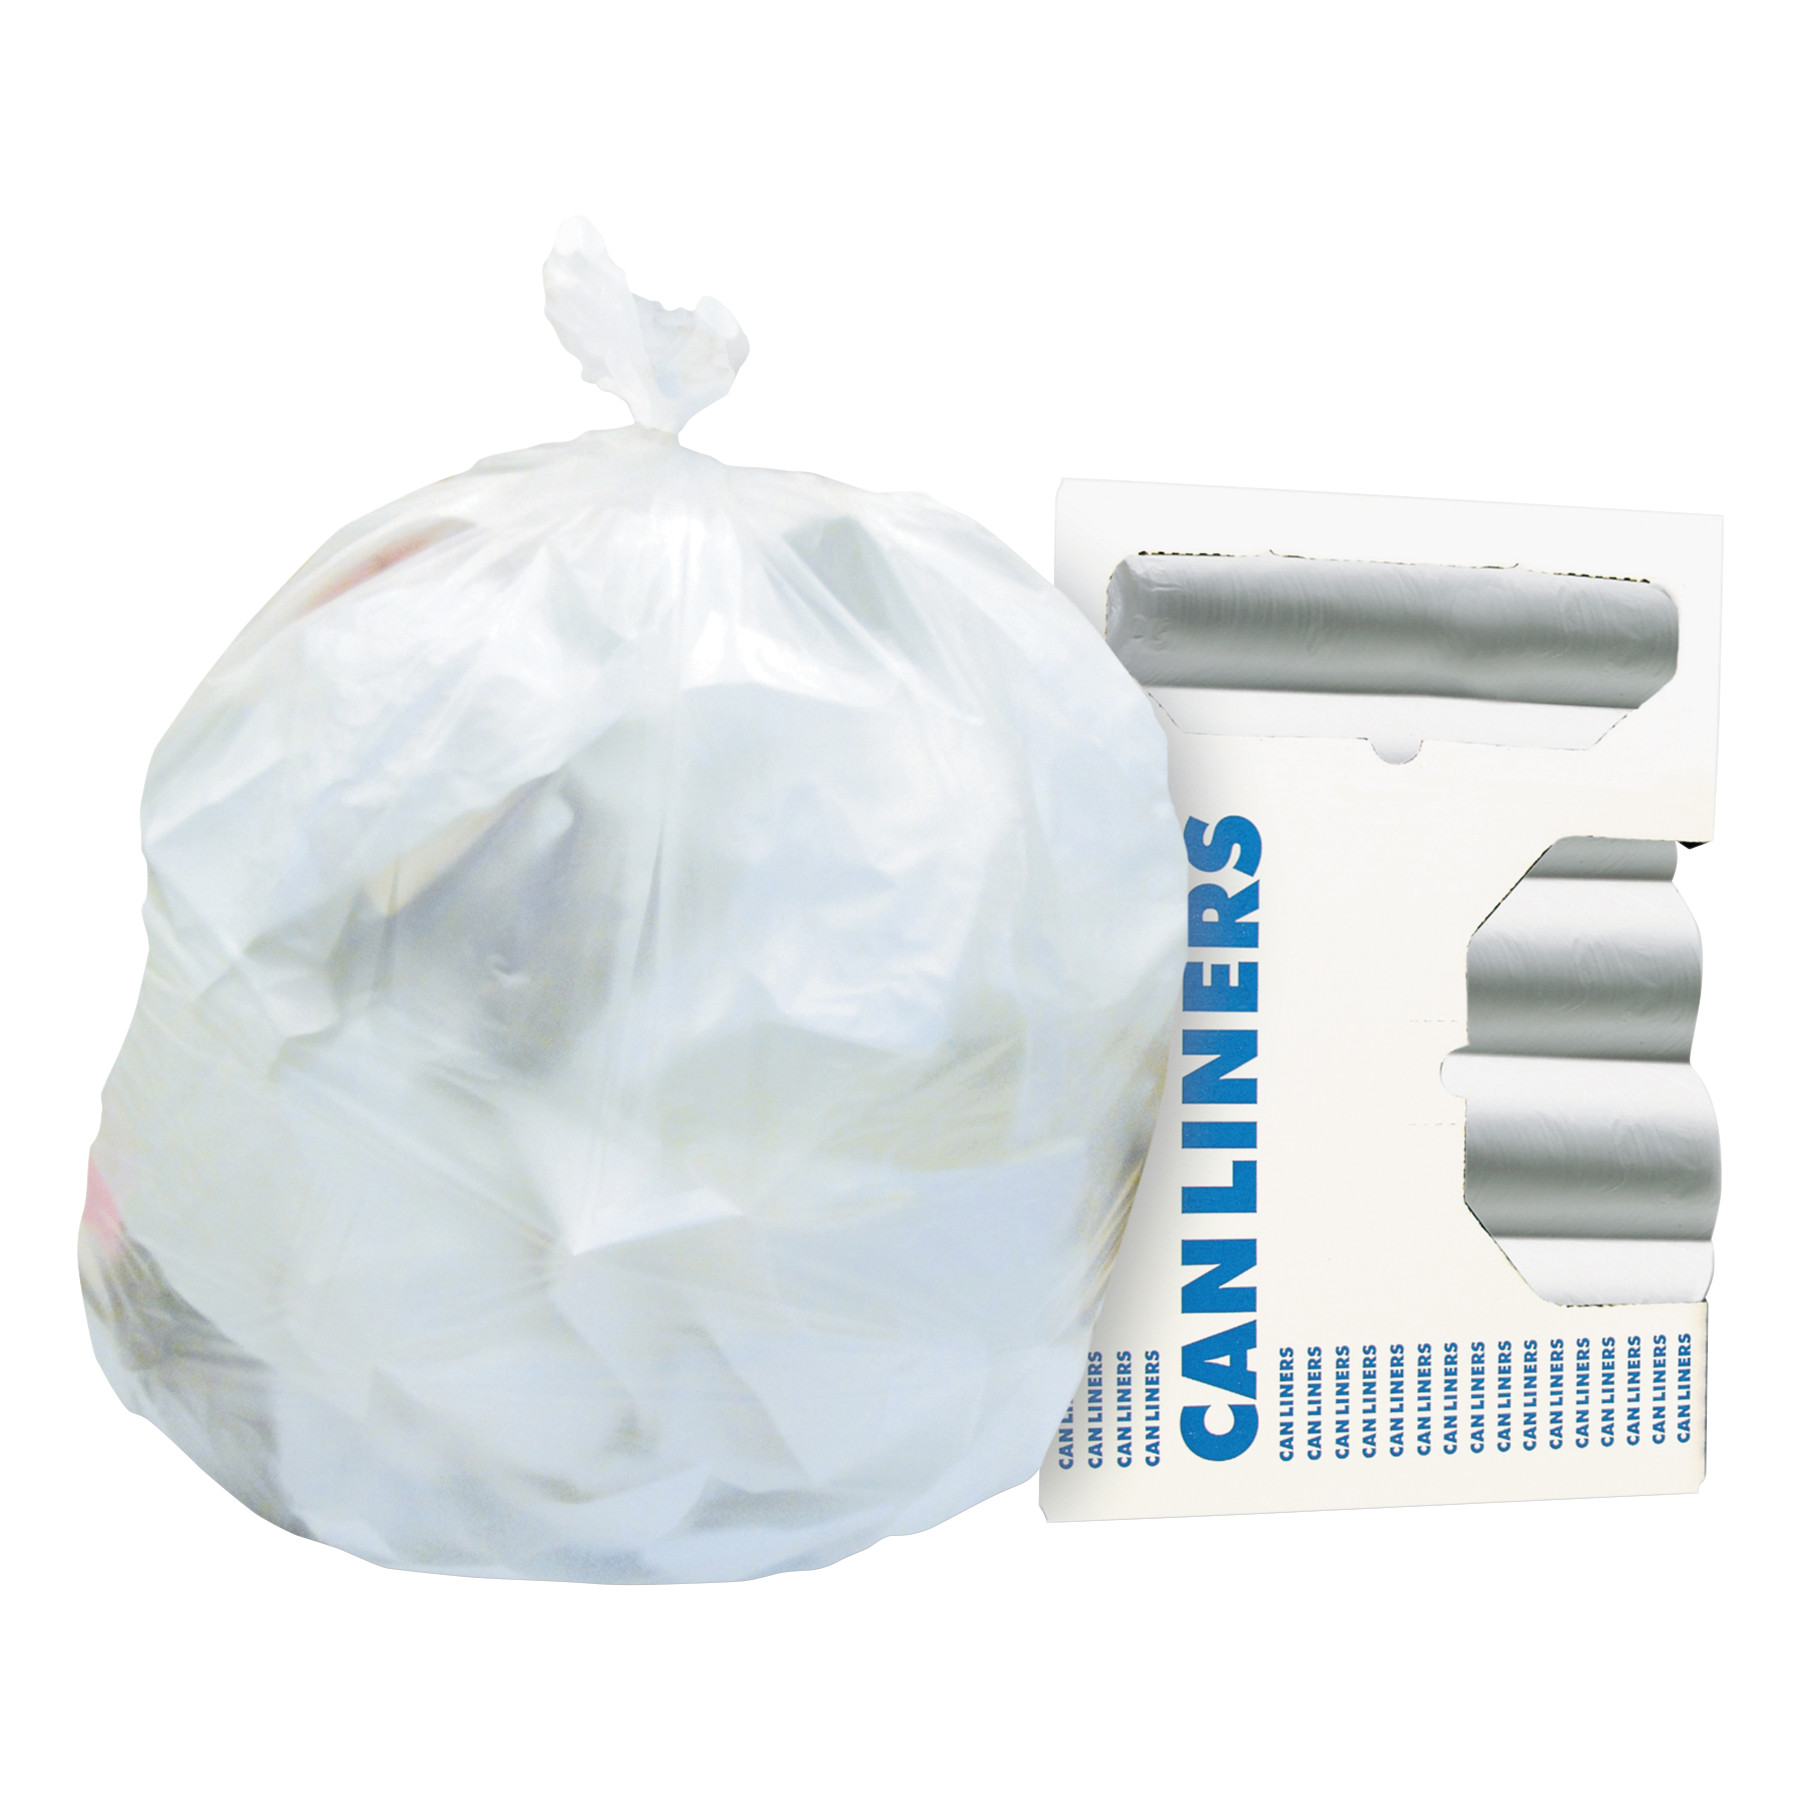 Heritage High-Density Coreless Trash Bags, 56 gal, 16 mic, 43 x 48, Natural, 200/Carton